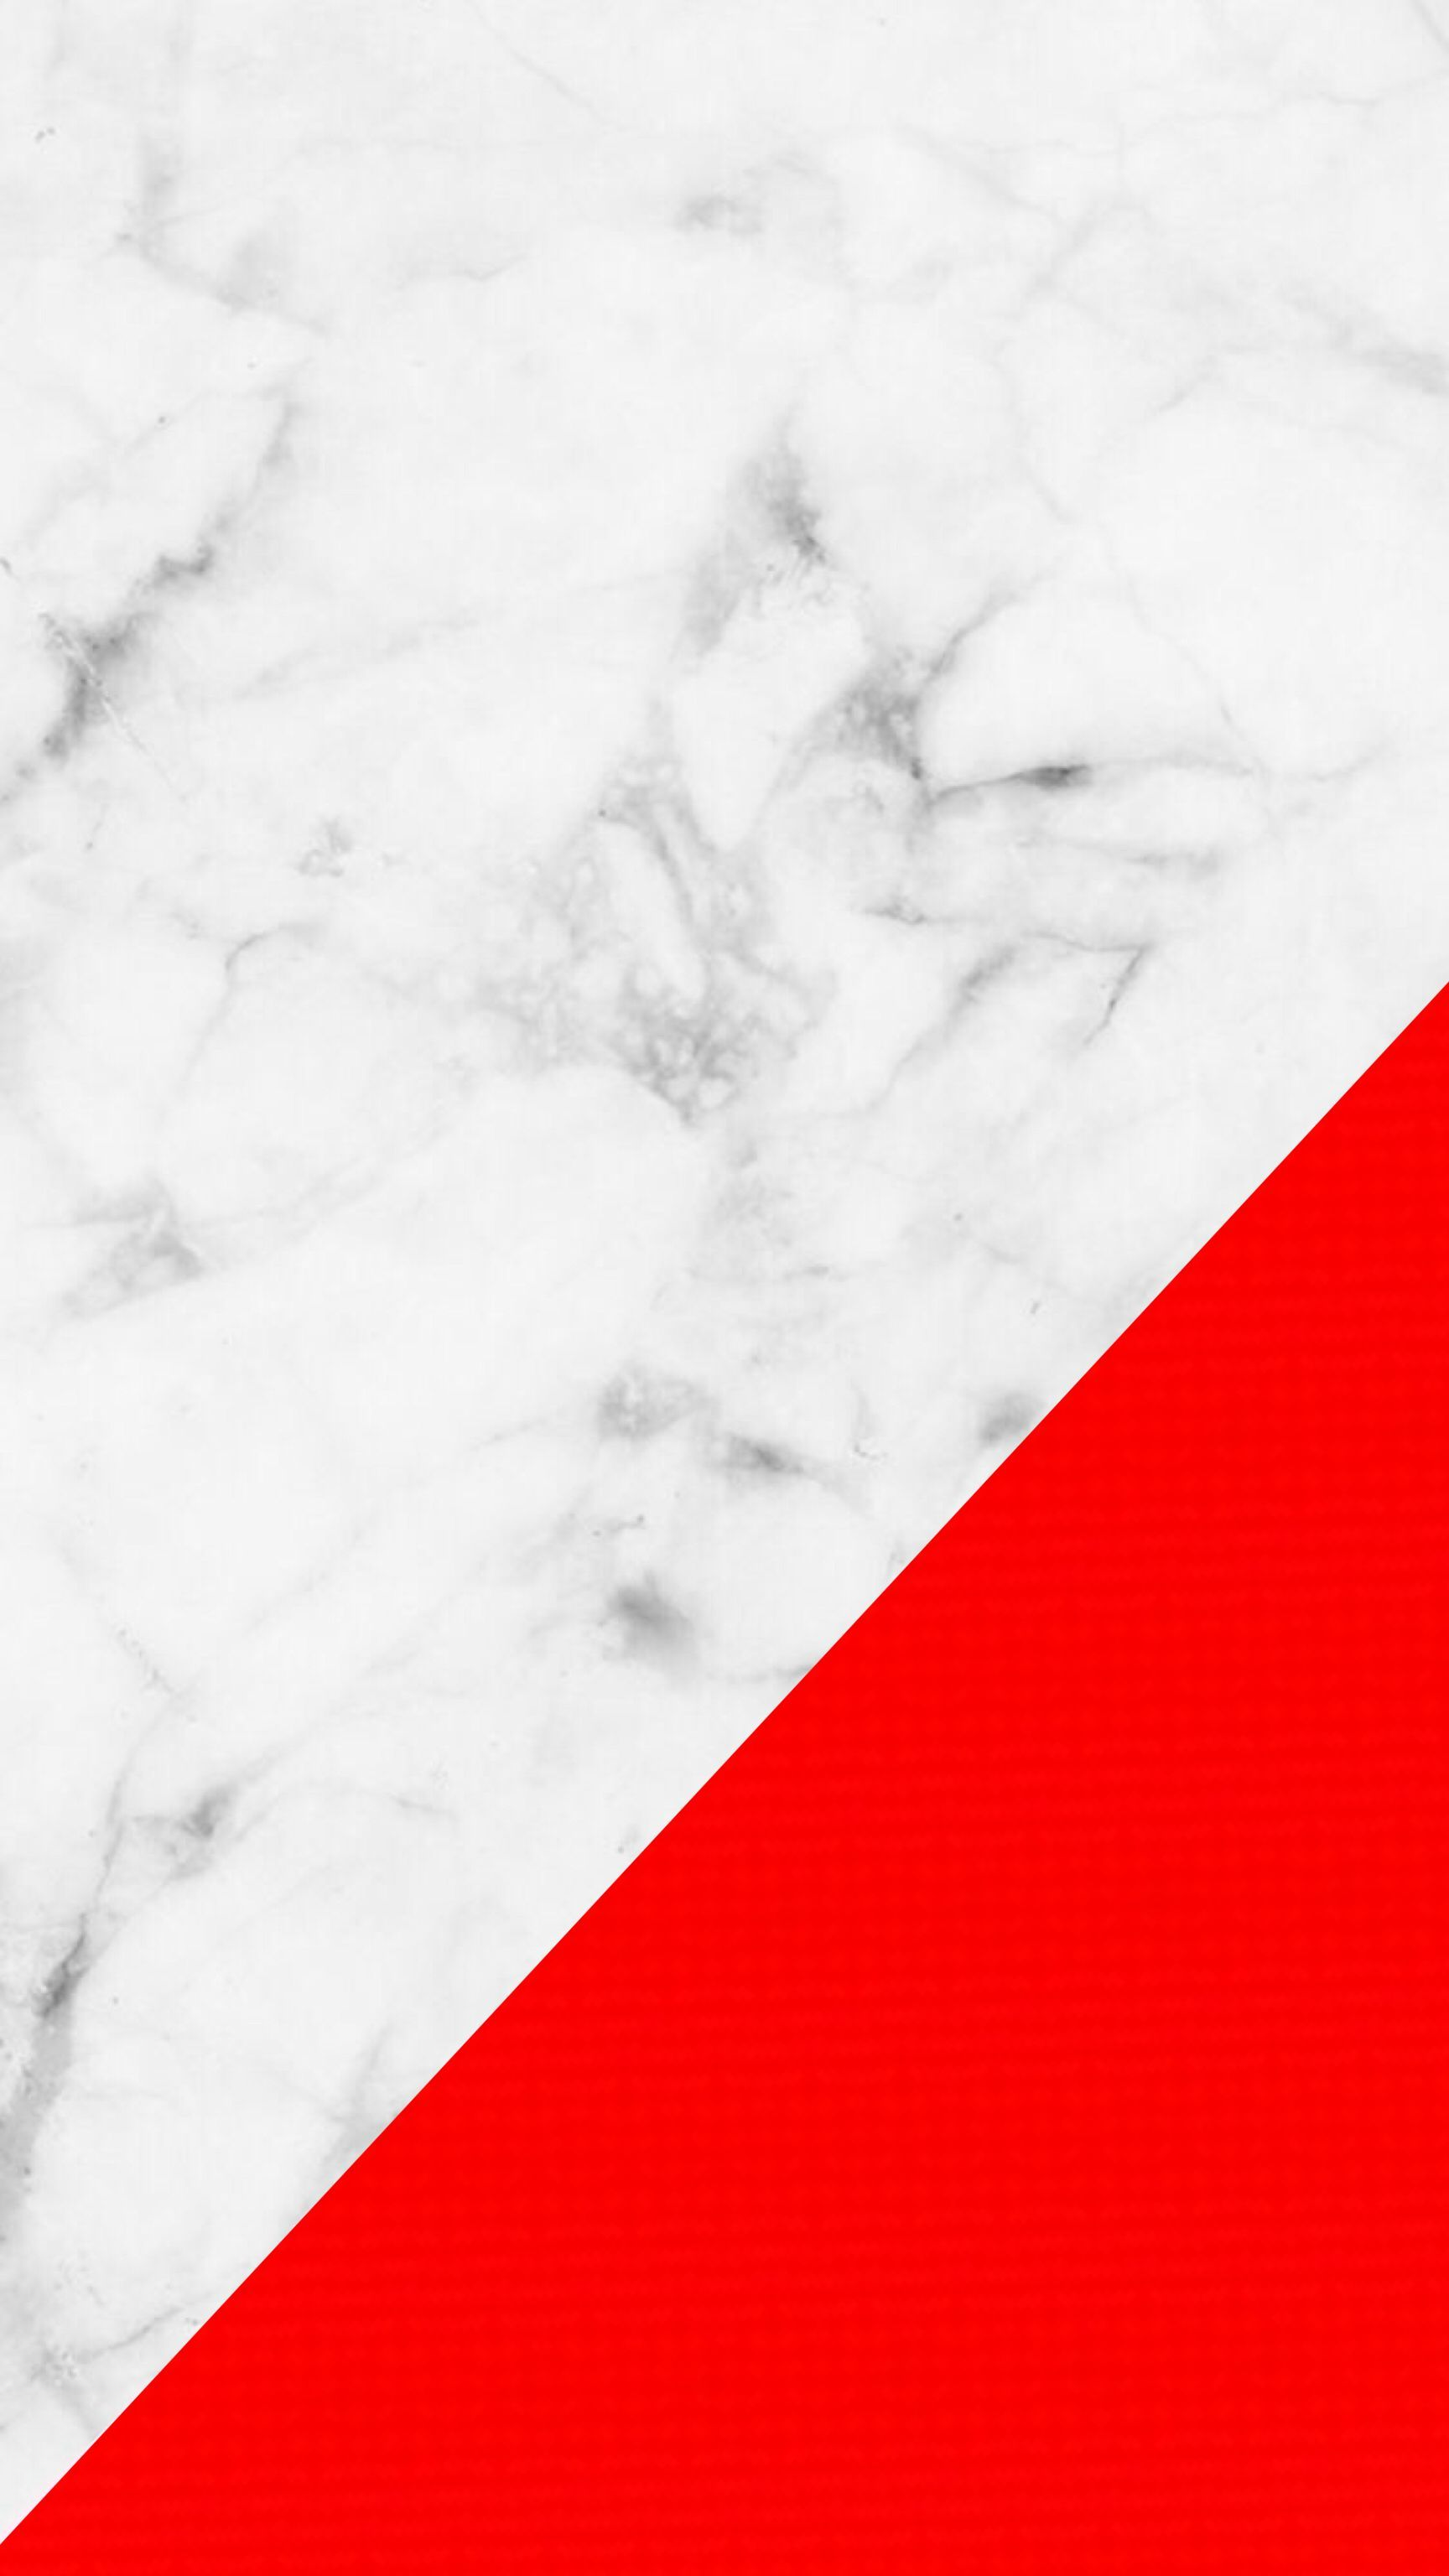 1728x3072 Marble with red on the edge | Wallpapers/ Inspiring Quotes ...